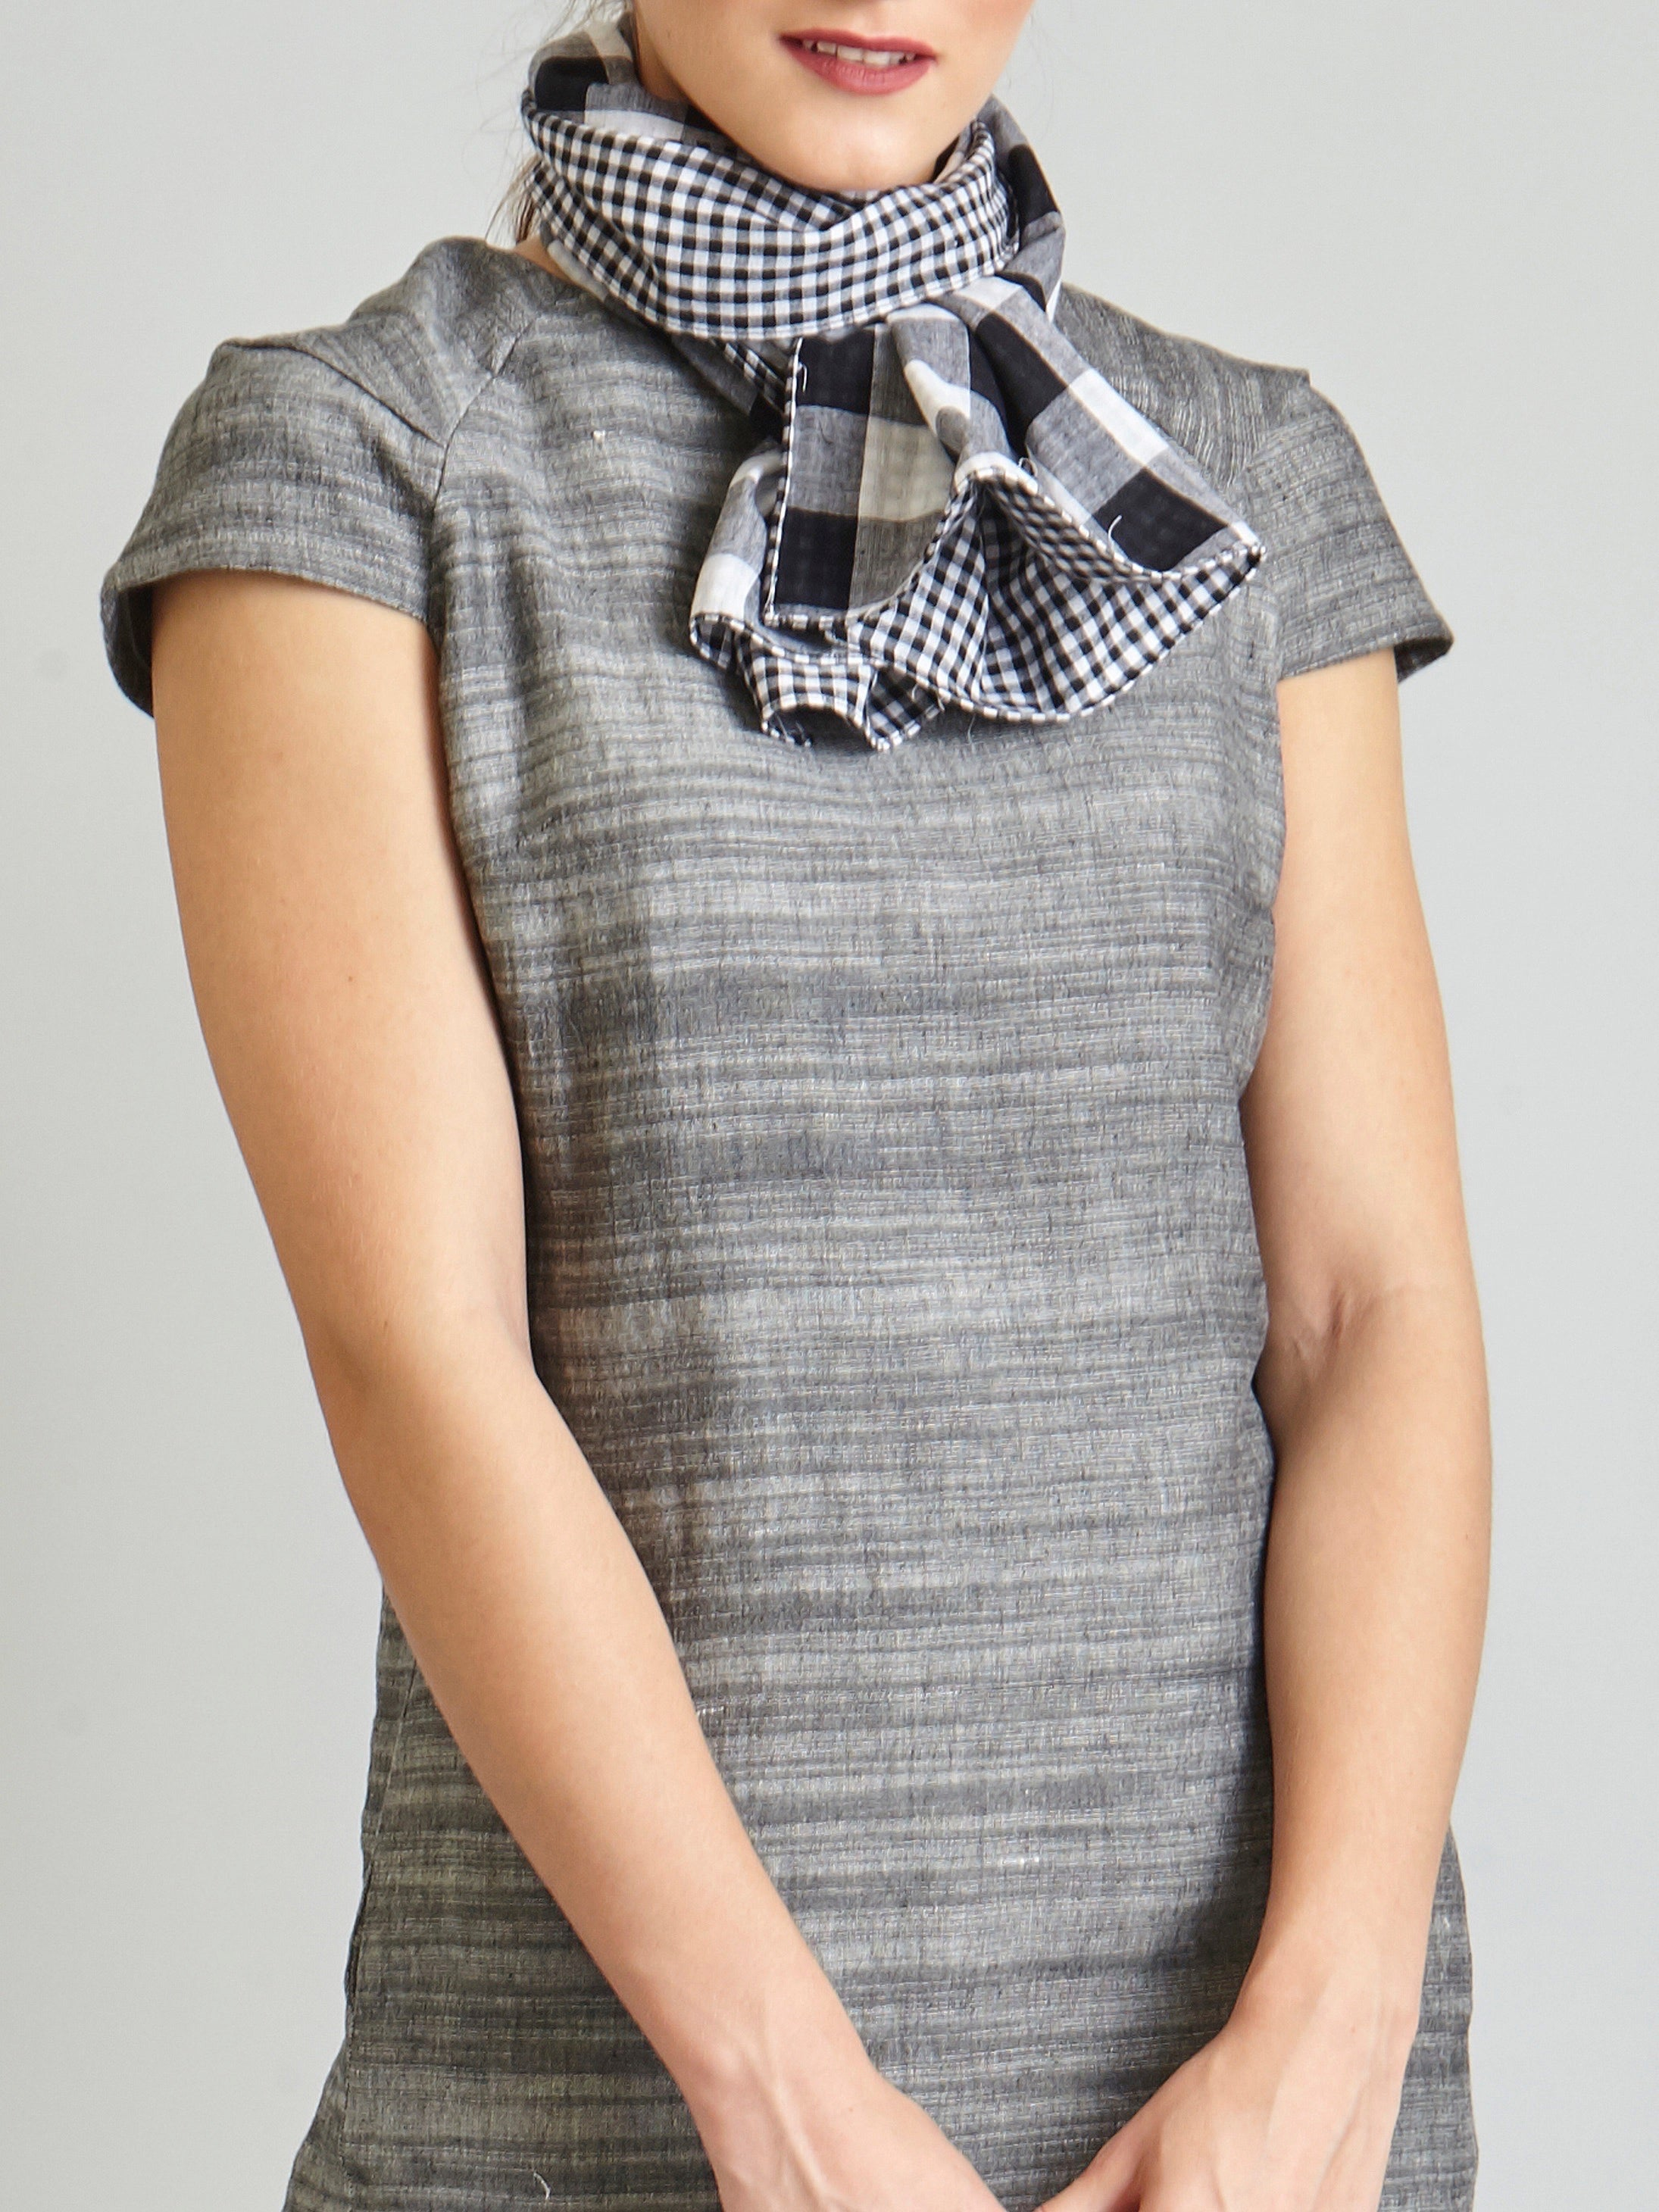 Gingham Reversible Stole - Black & White